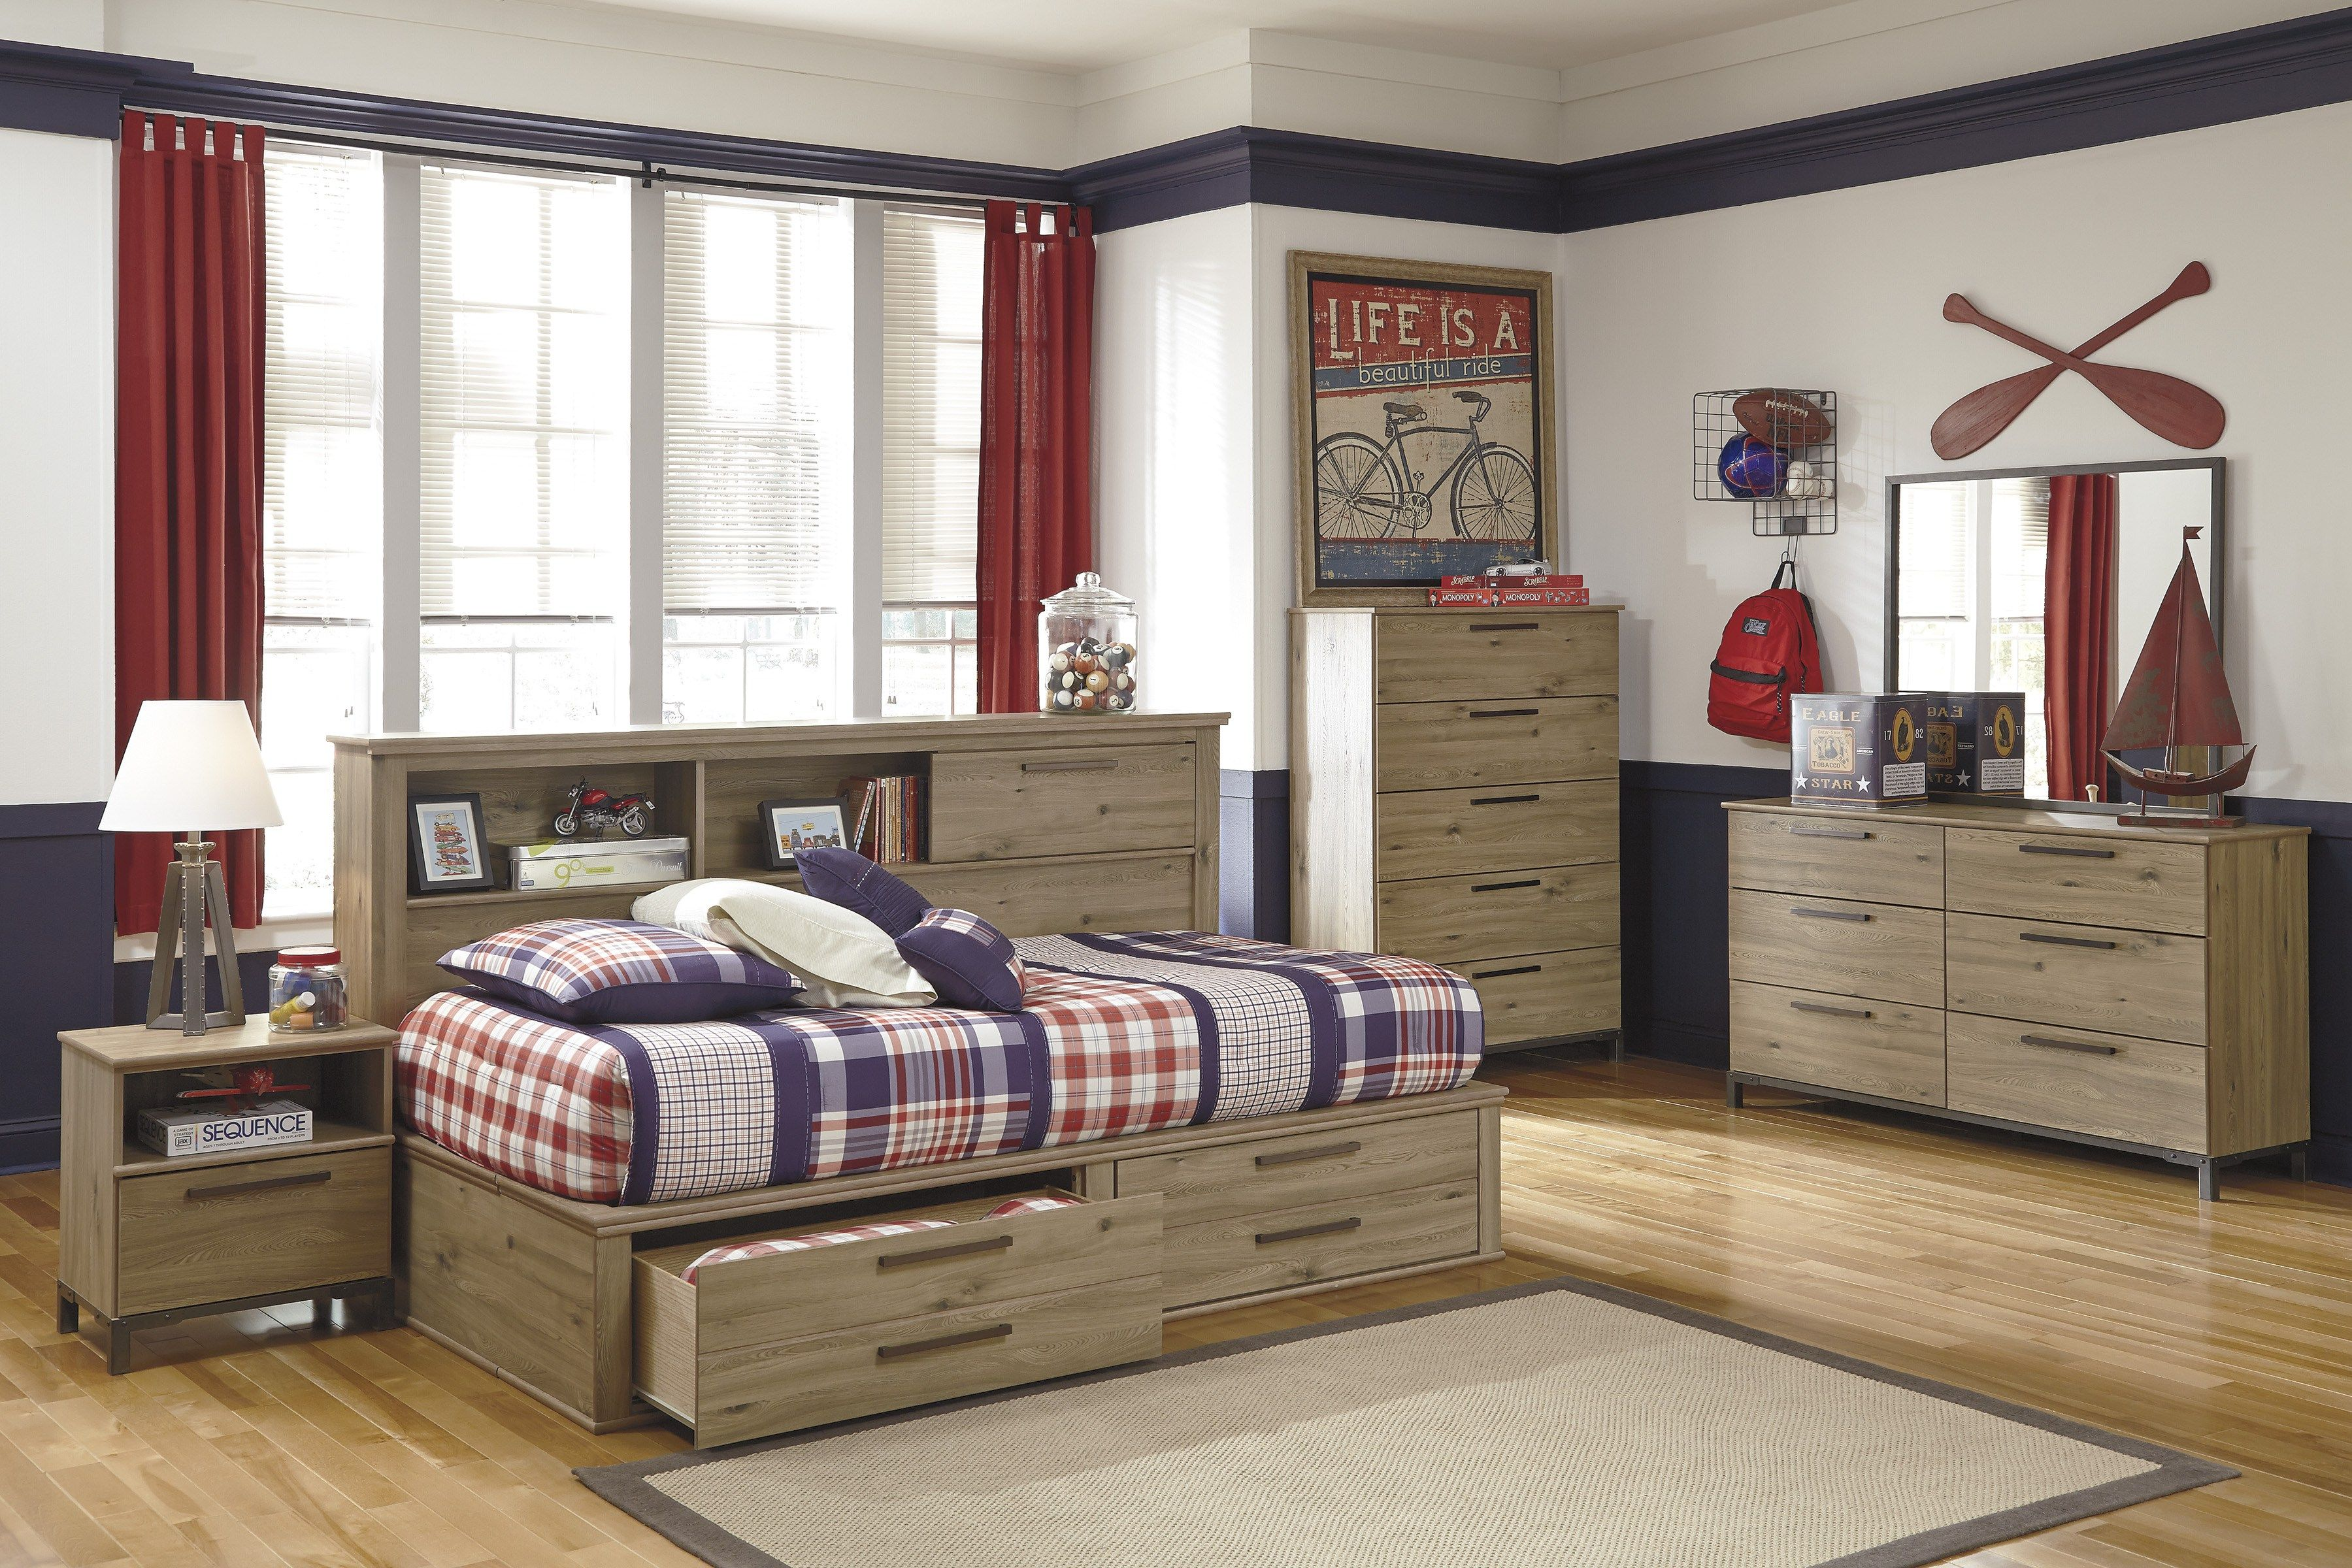 Boy's Bedroom with Storage Bookcase bed, Bed frame